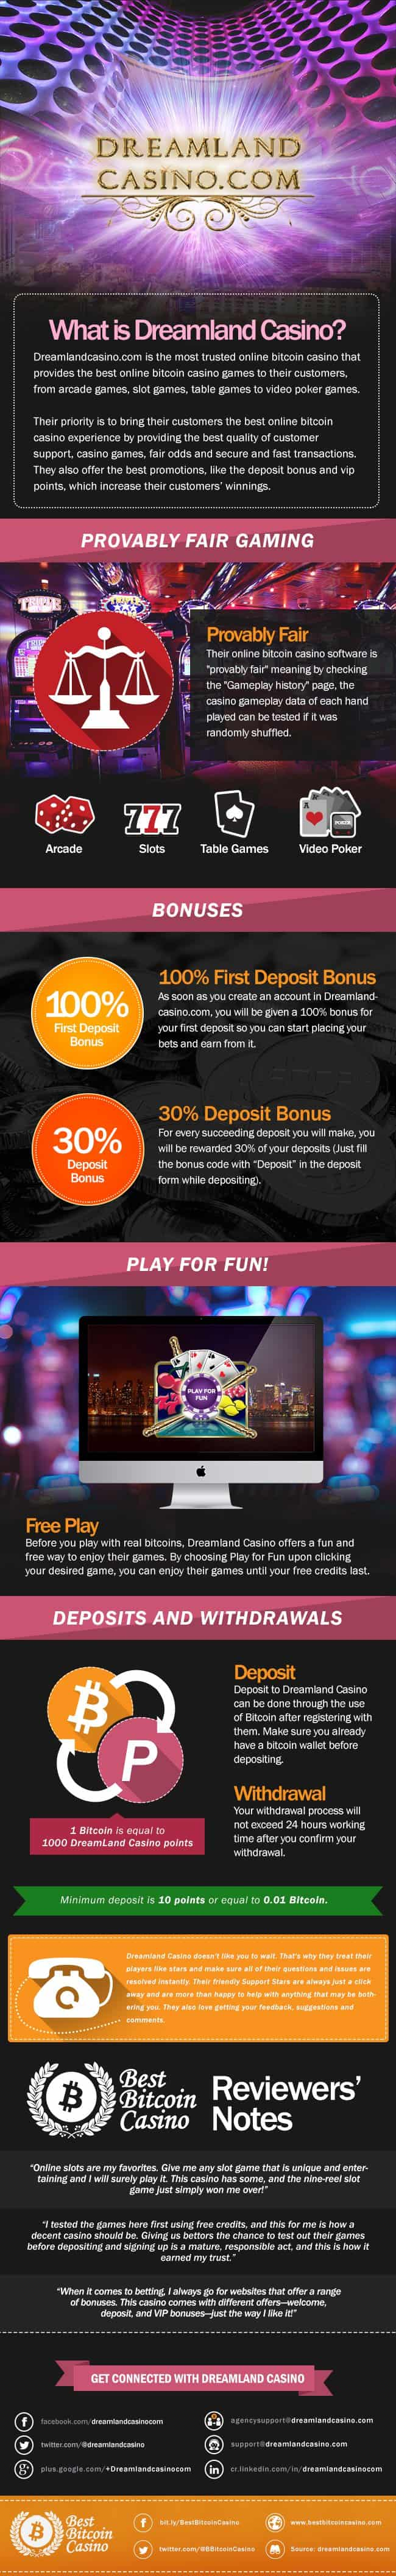 Dreamland Casino Infographic